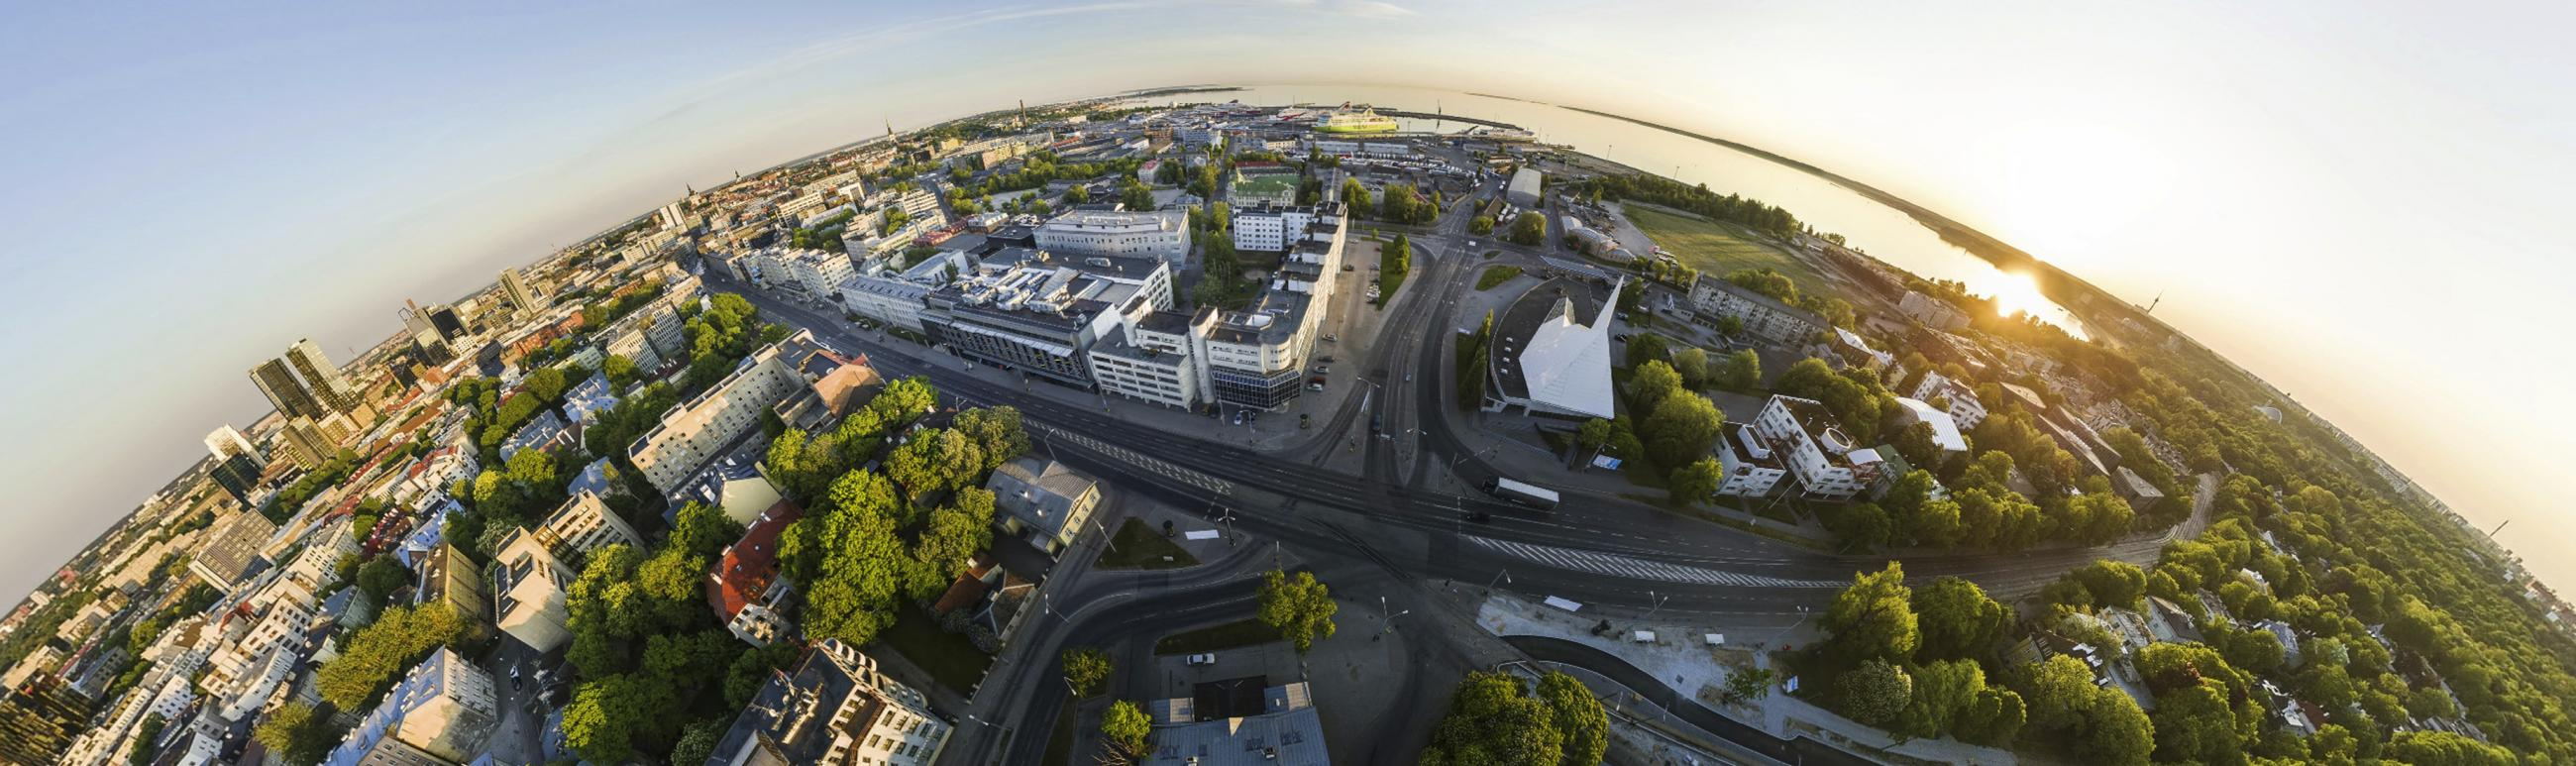 Tallinn University campus birds eye view